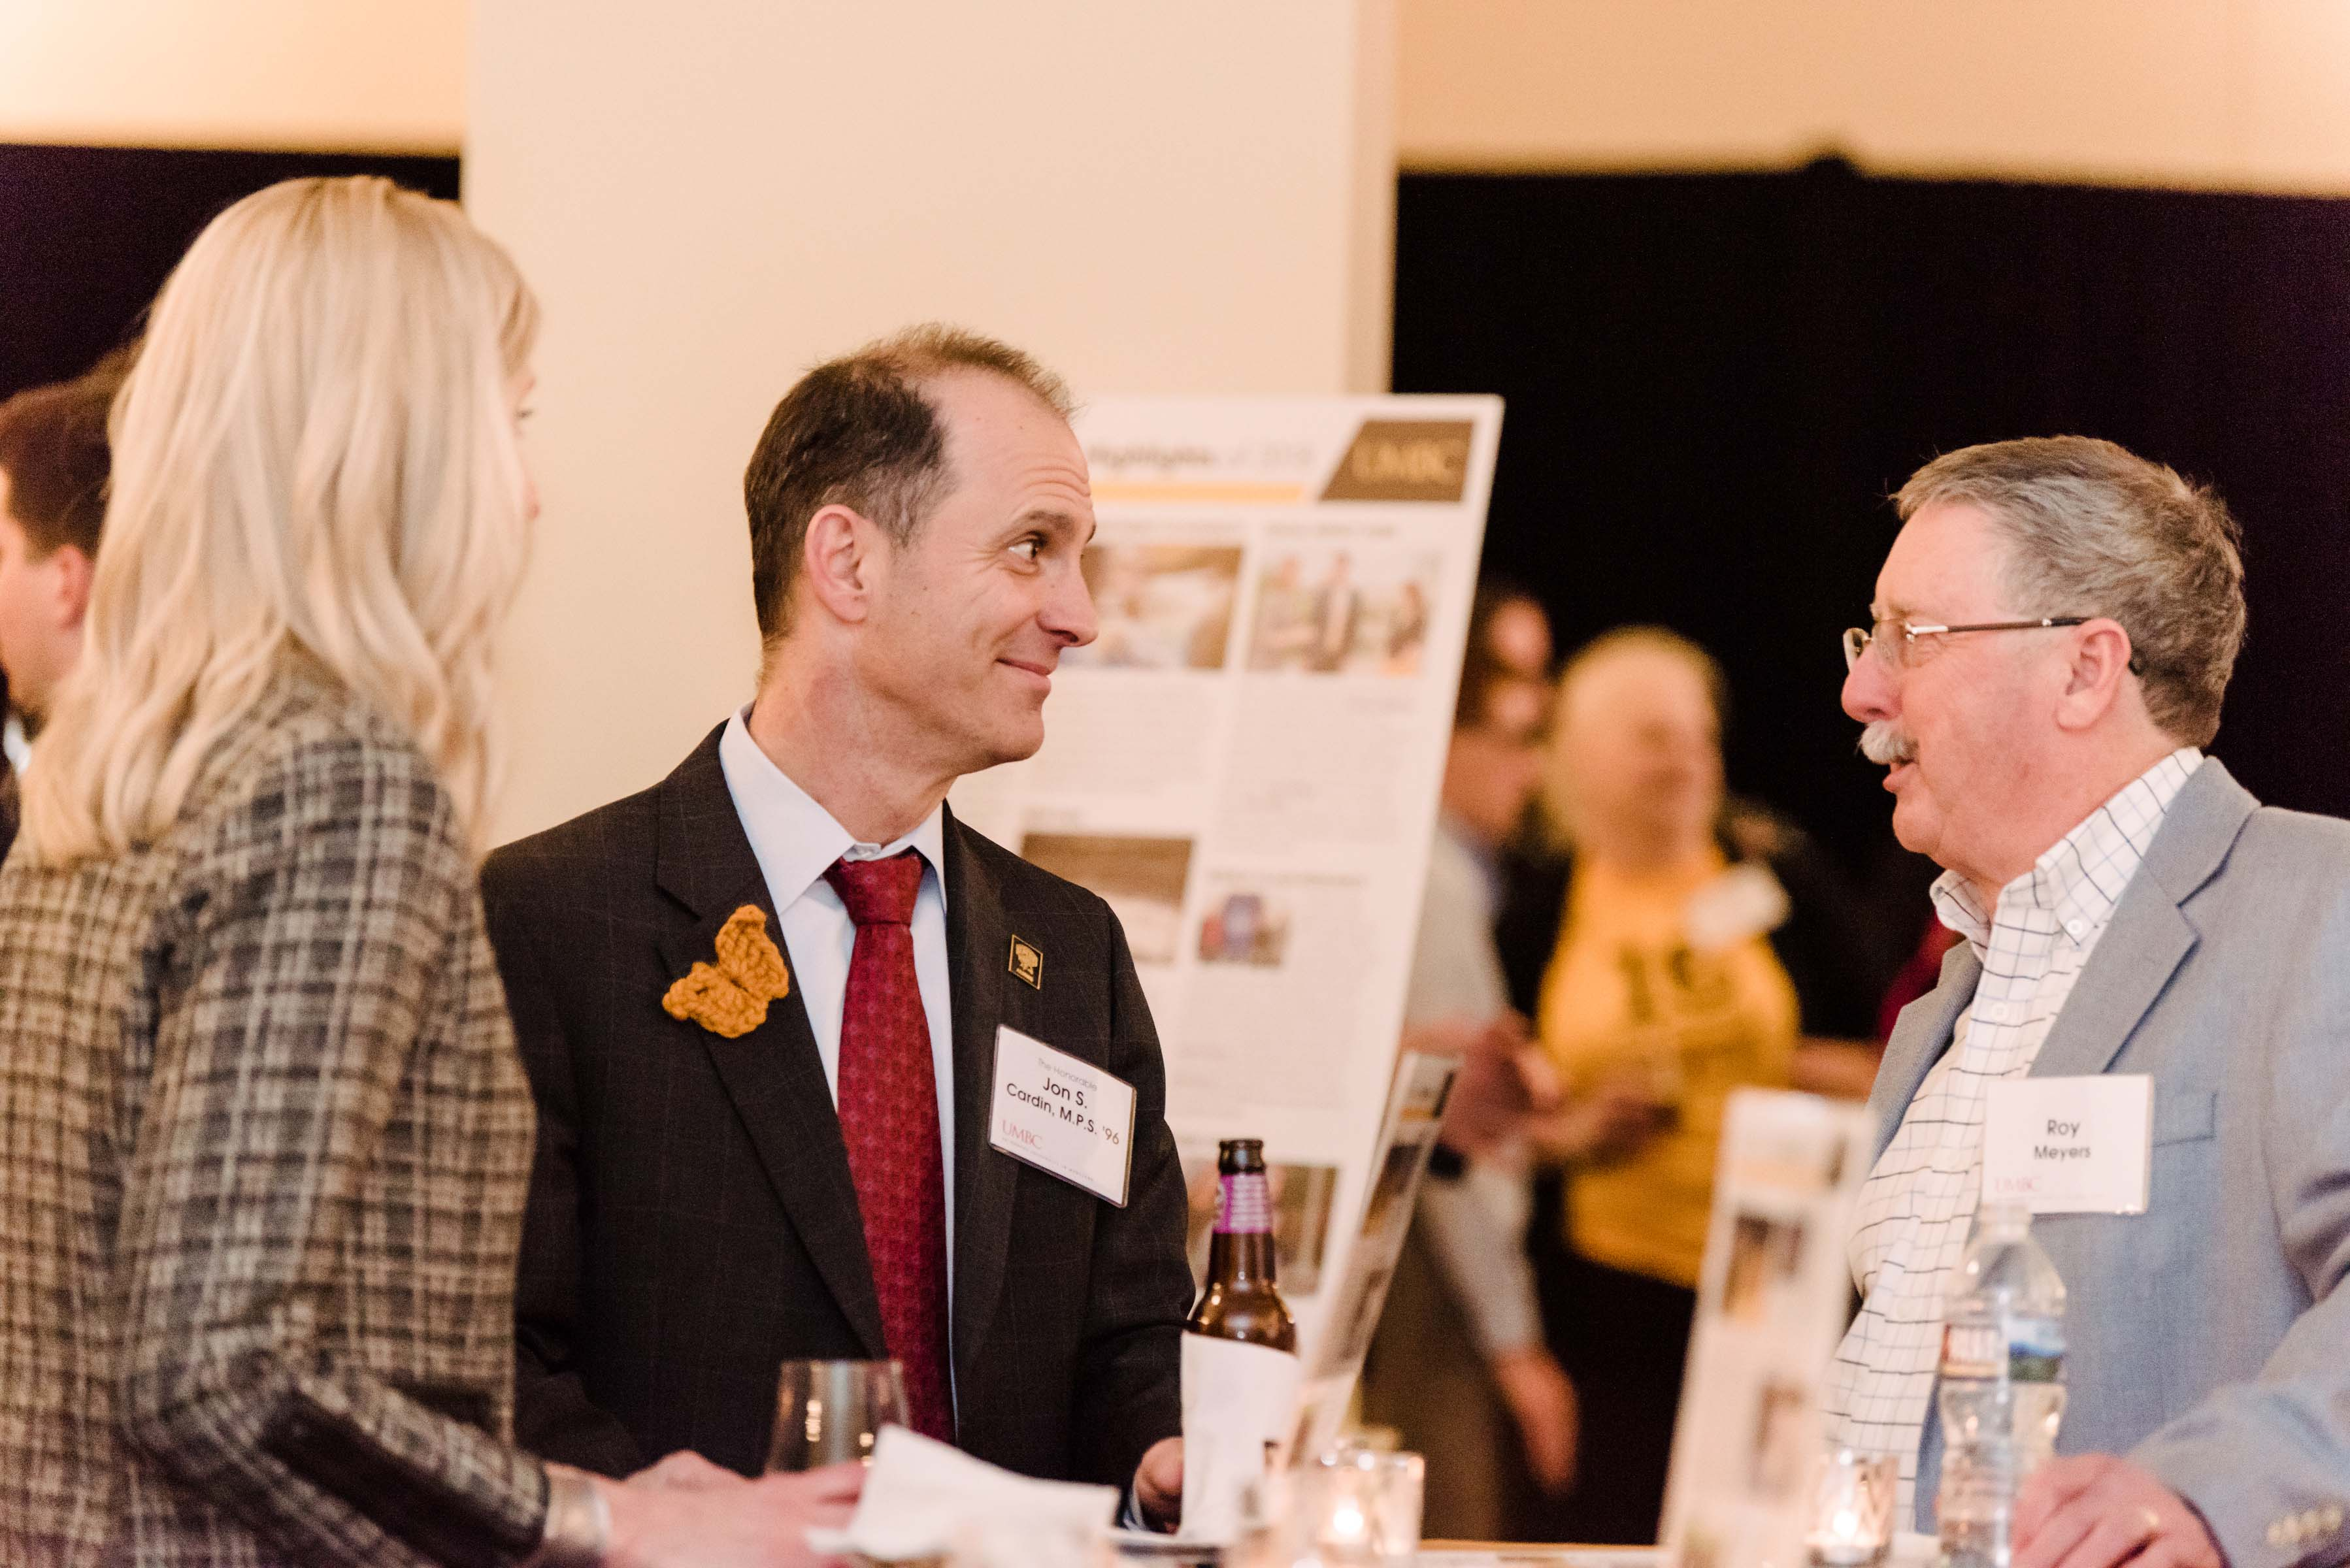 Three people conversing drinks in hand at Annapolis Alumni reception